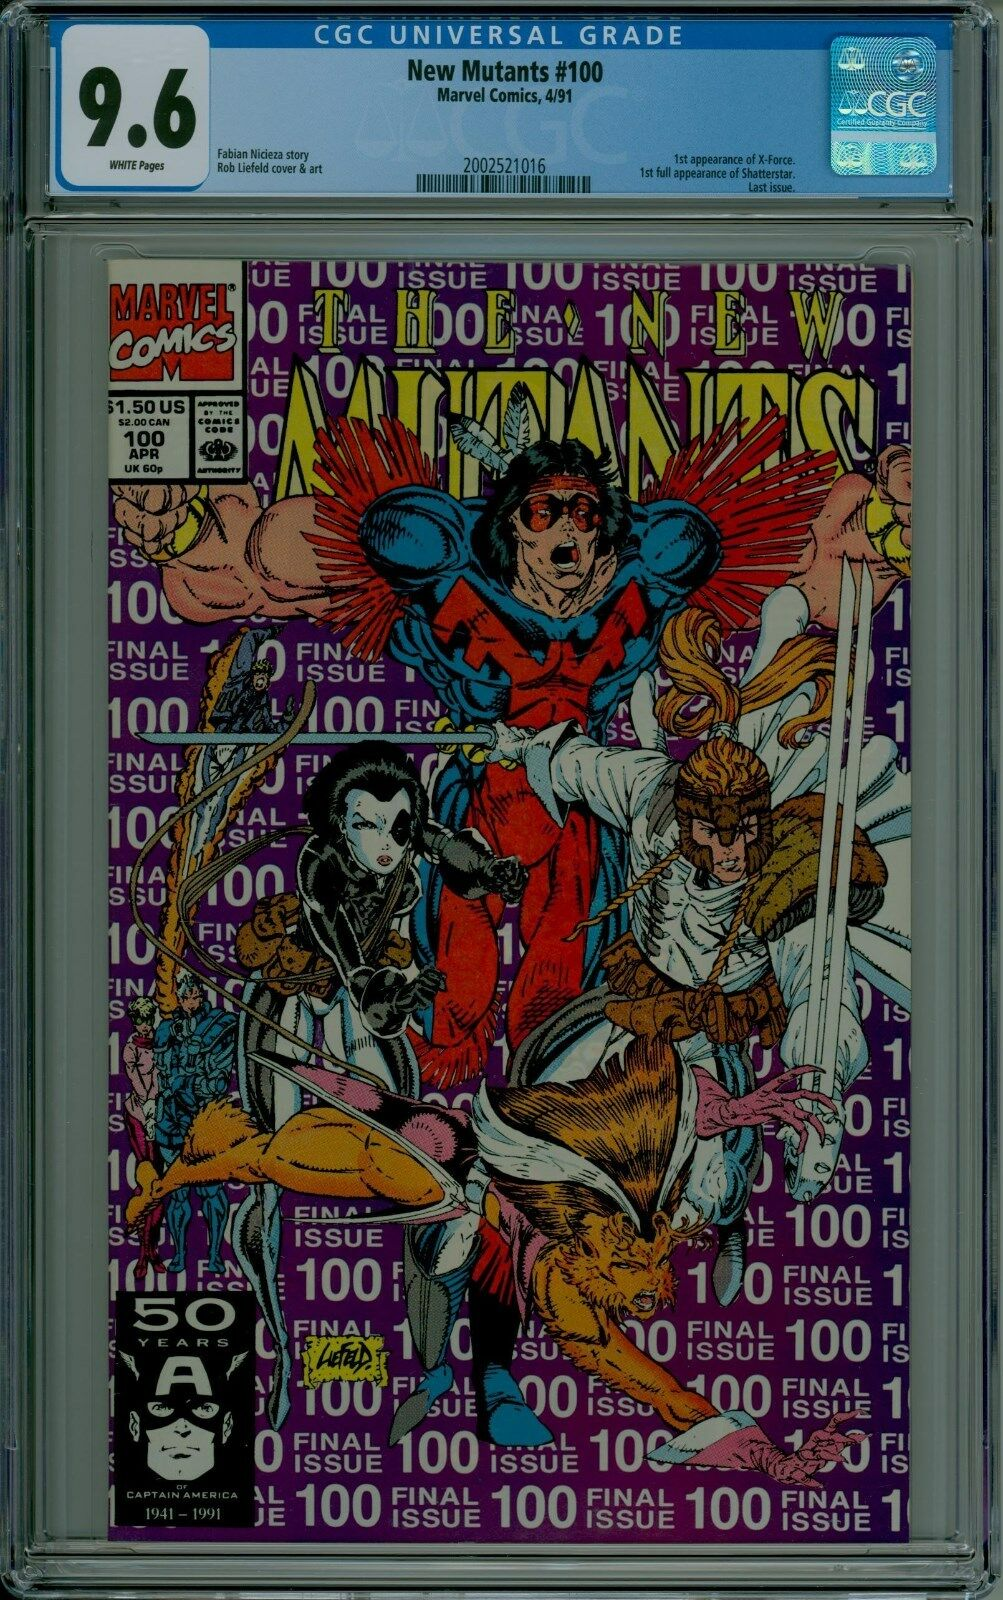 The New Mutants #100 CGC 9 6 NM+ white pages SHATTERSTAR X-FORCE 2002521016